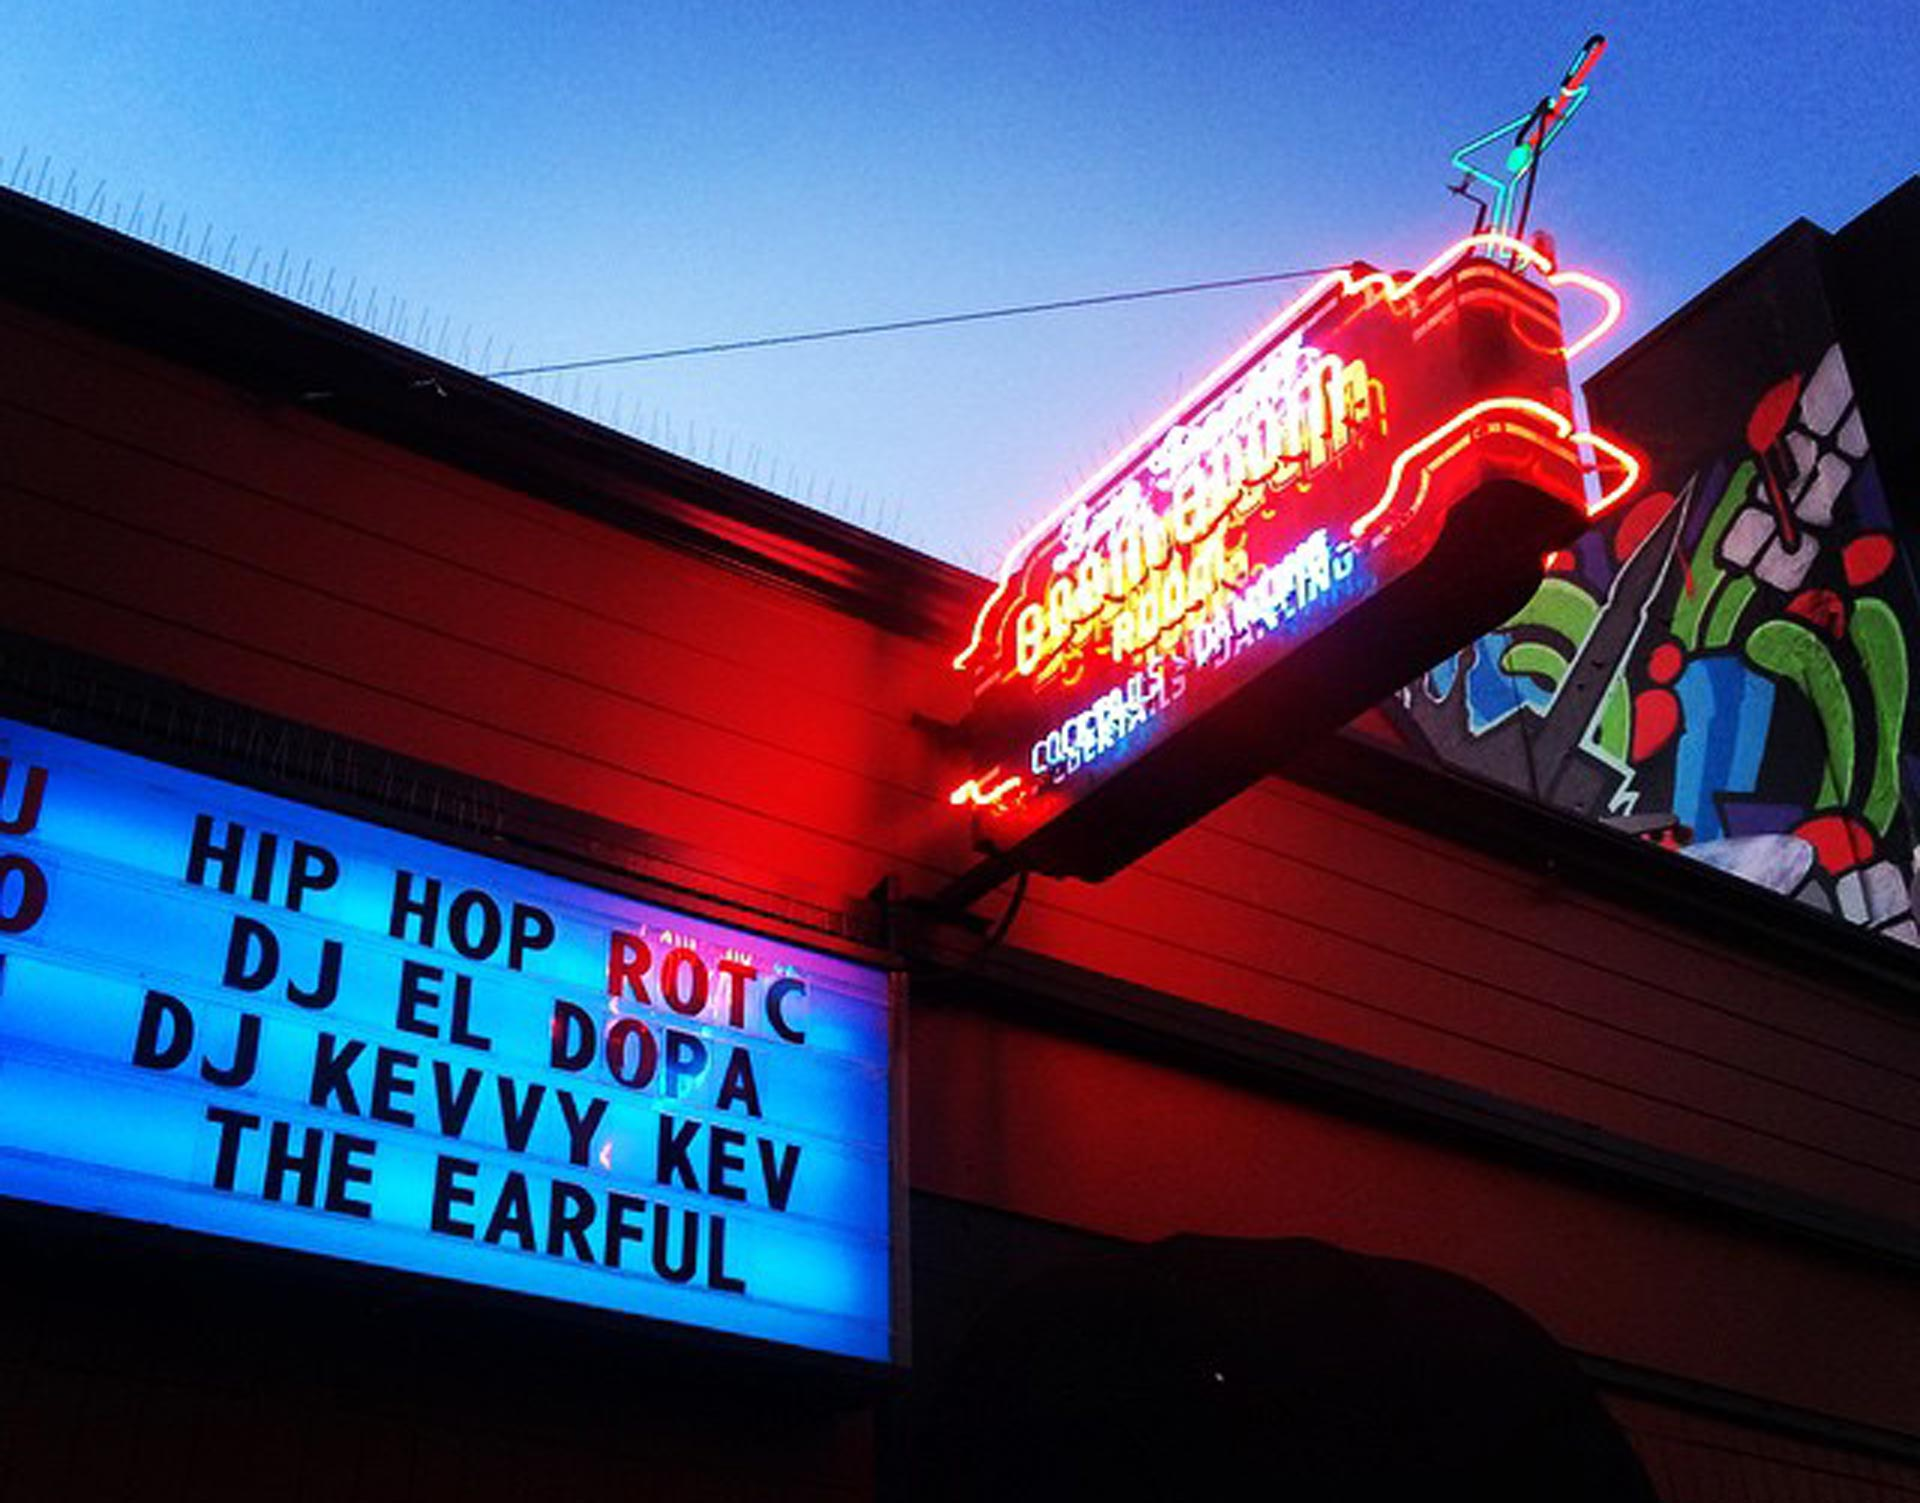 Return of the Cypher and DJ Kevvy Kev on the Marquee outside San Francisco's Boom Boom Room.